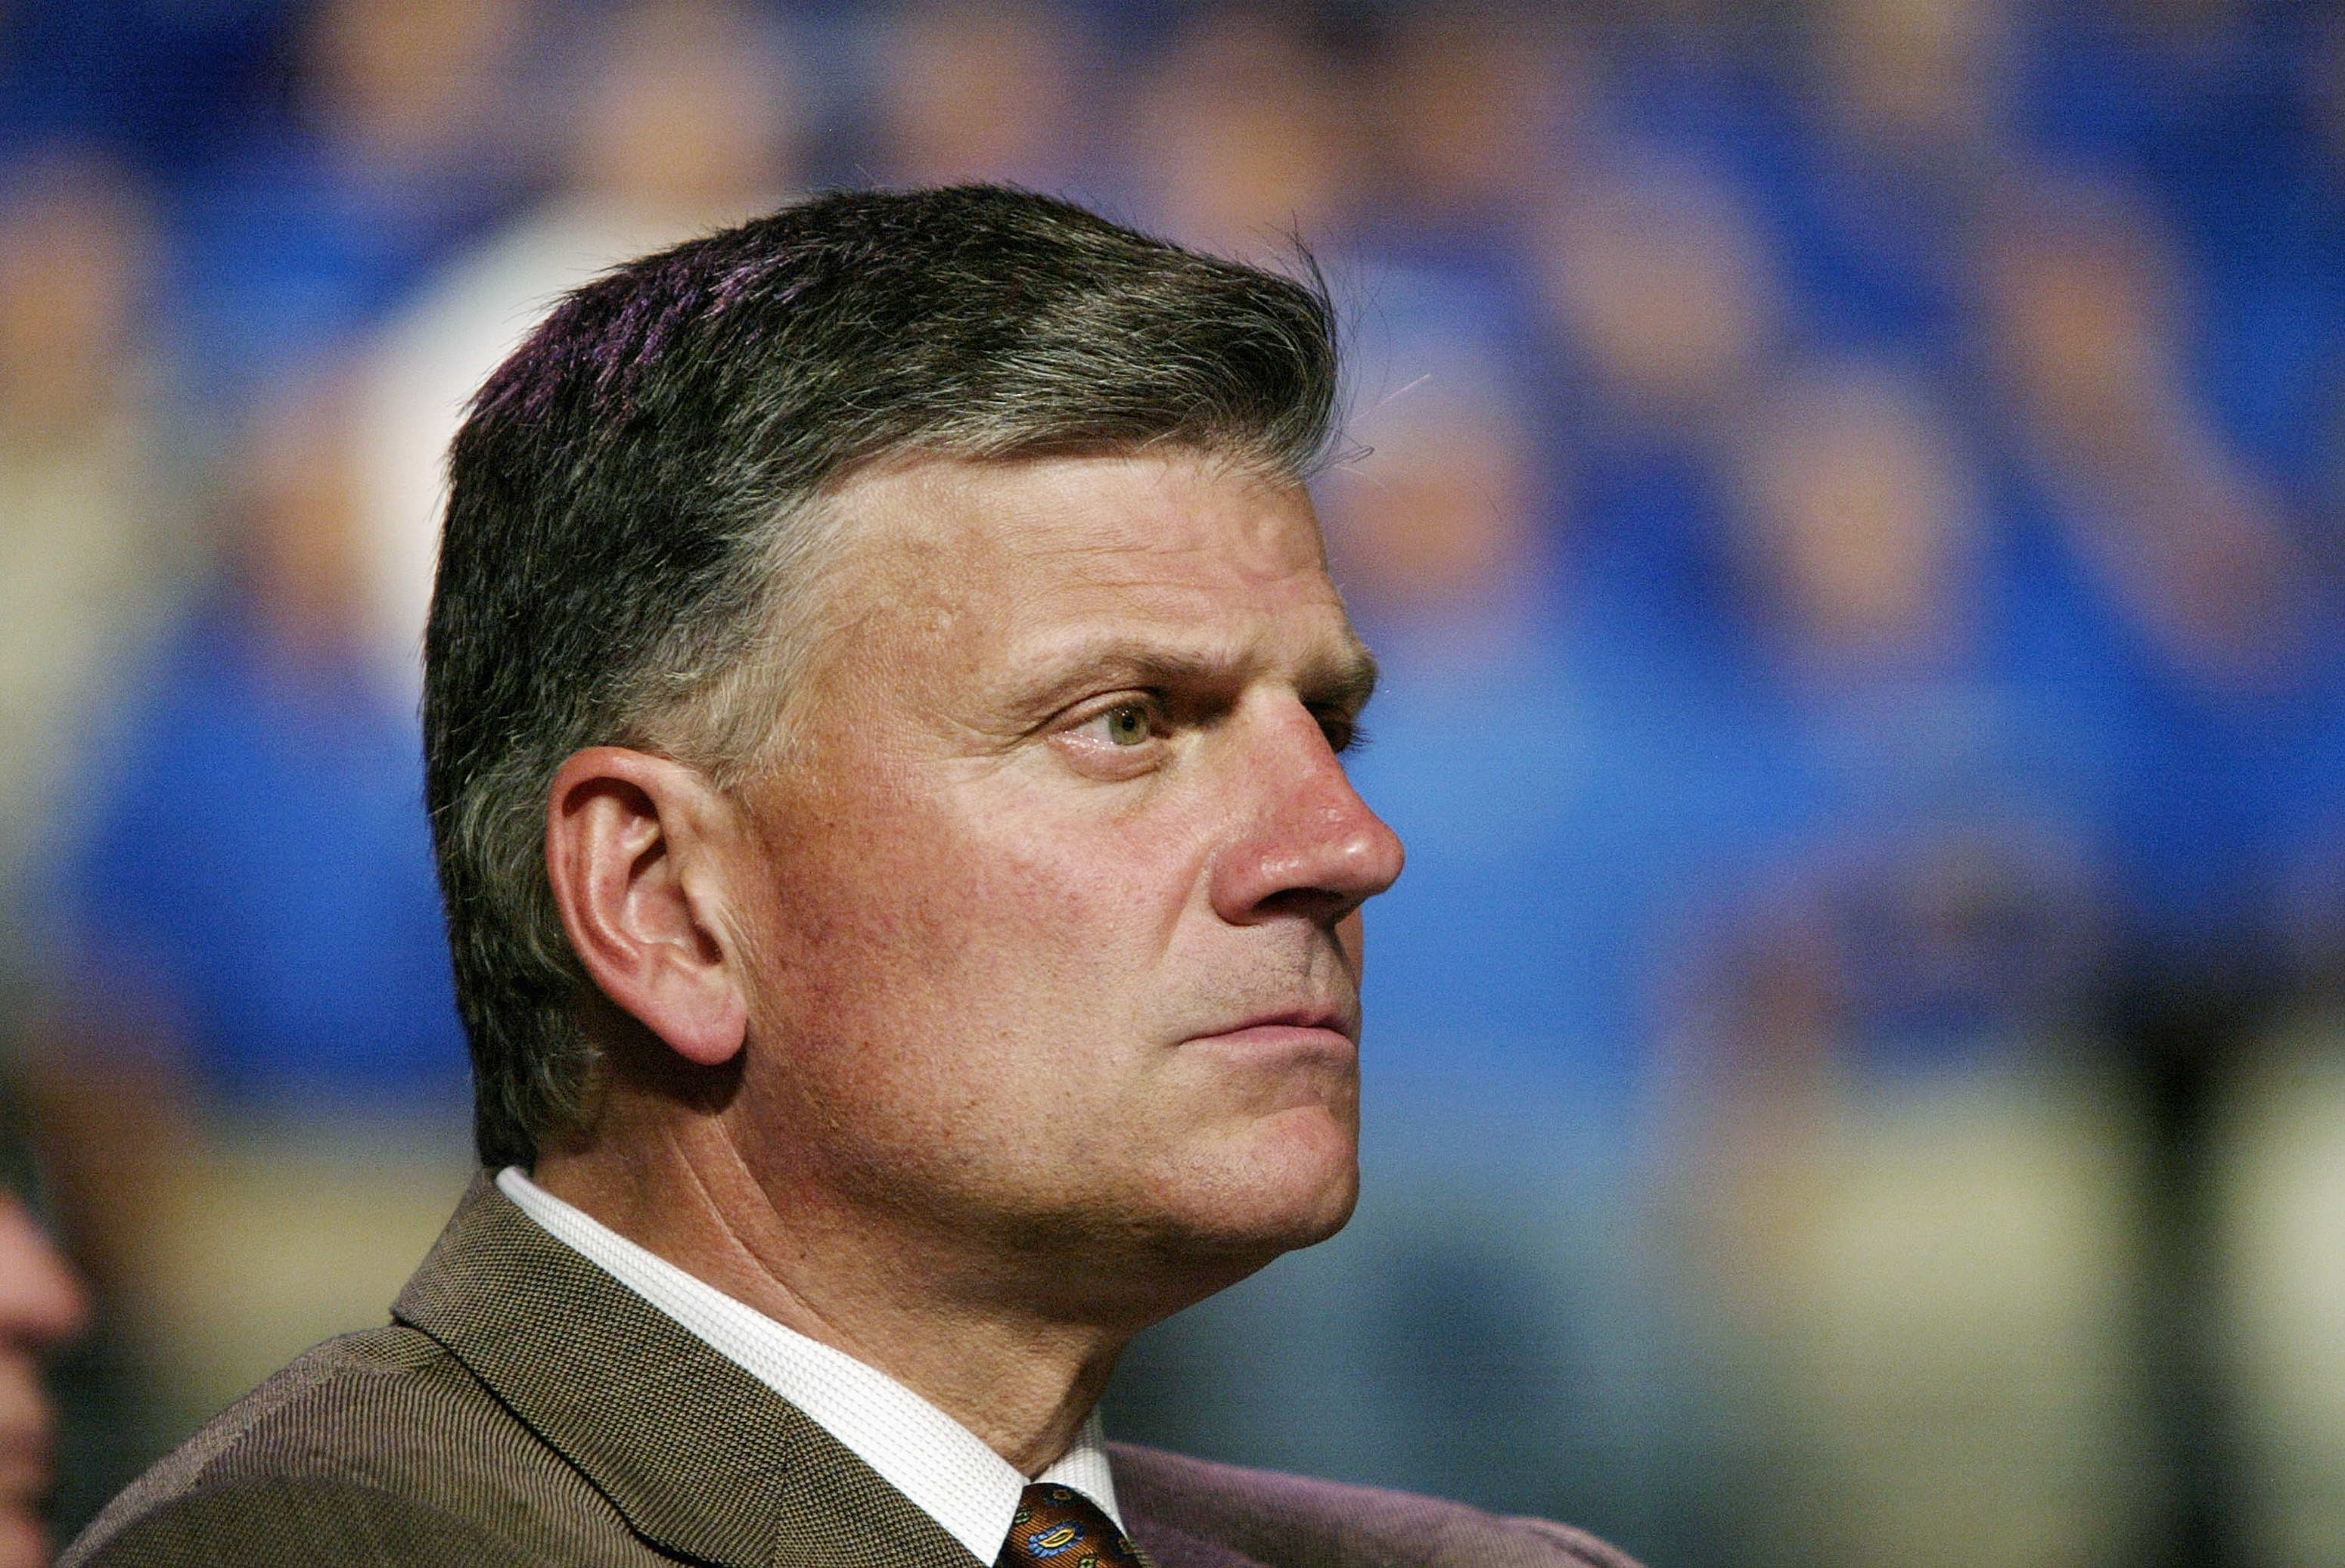 Reverend Franklin Graham looks on at a Billy Graham rally on June 12, 2003 in Oklahoma City, Oklahoma.